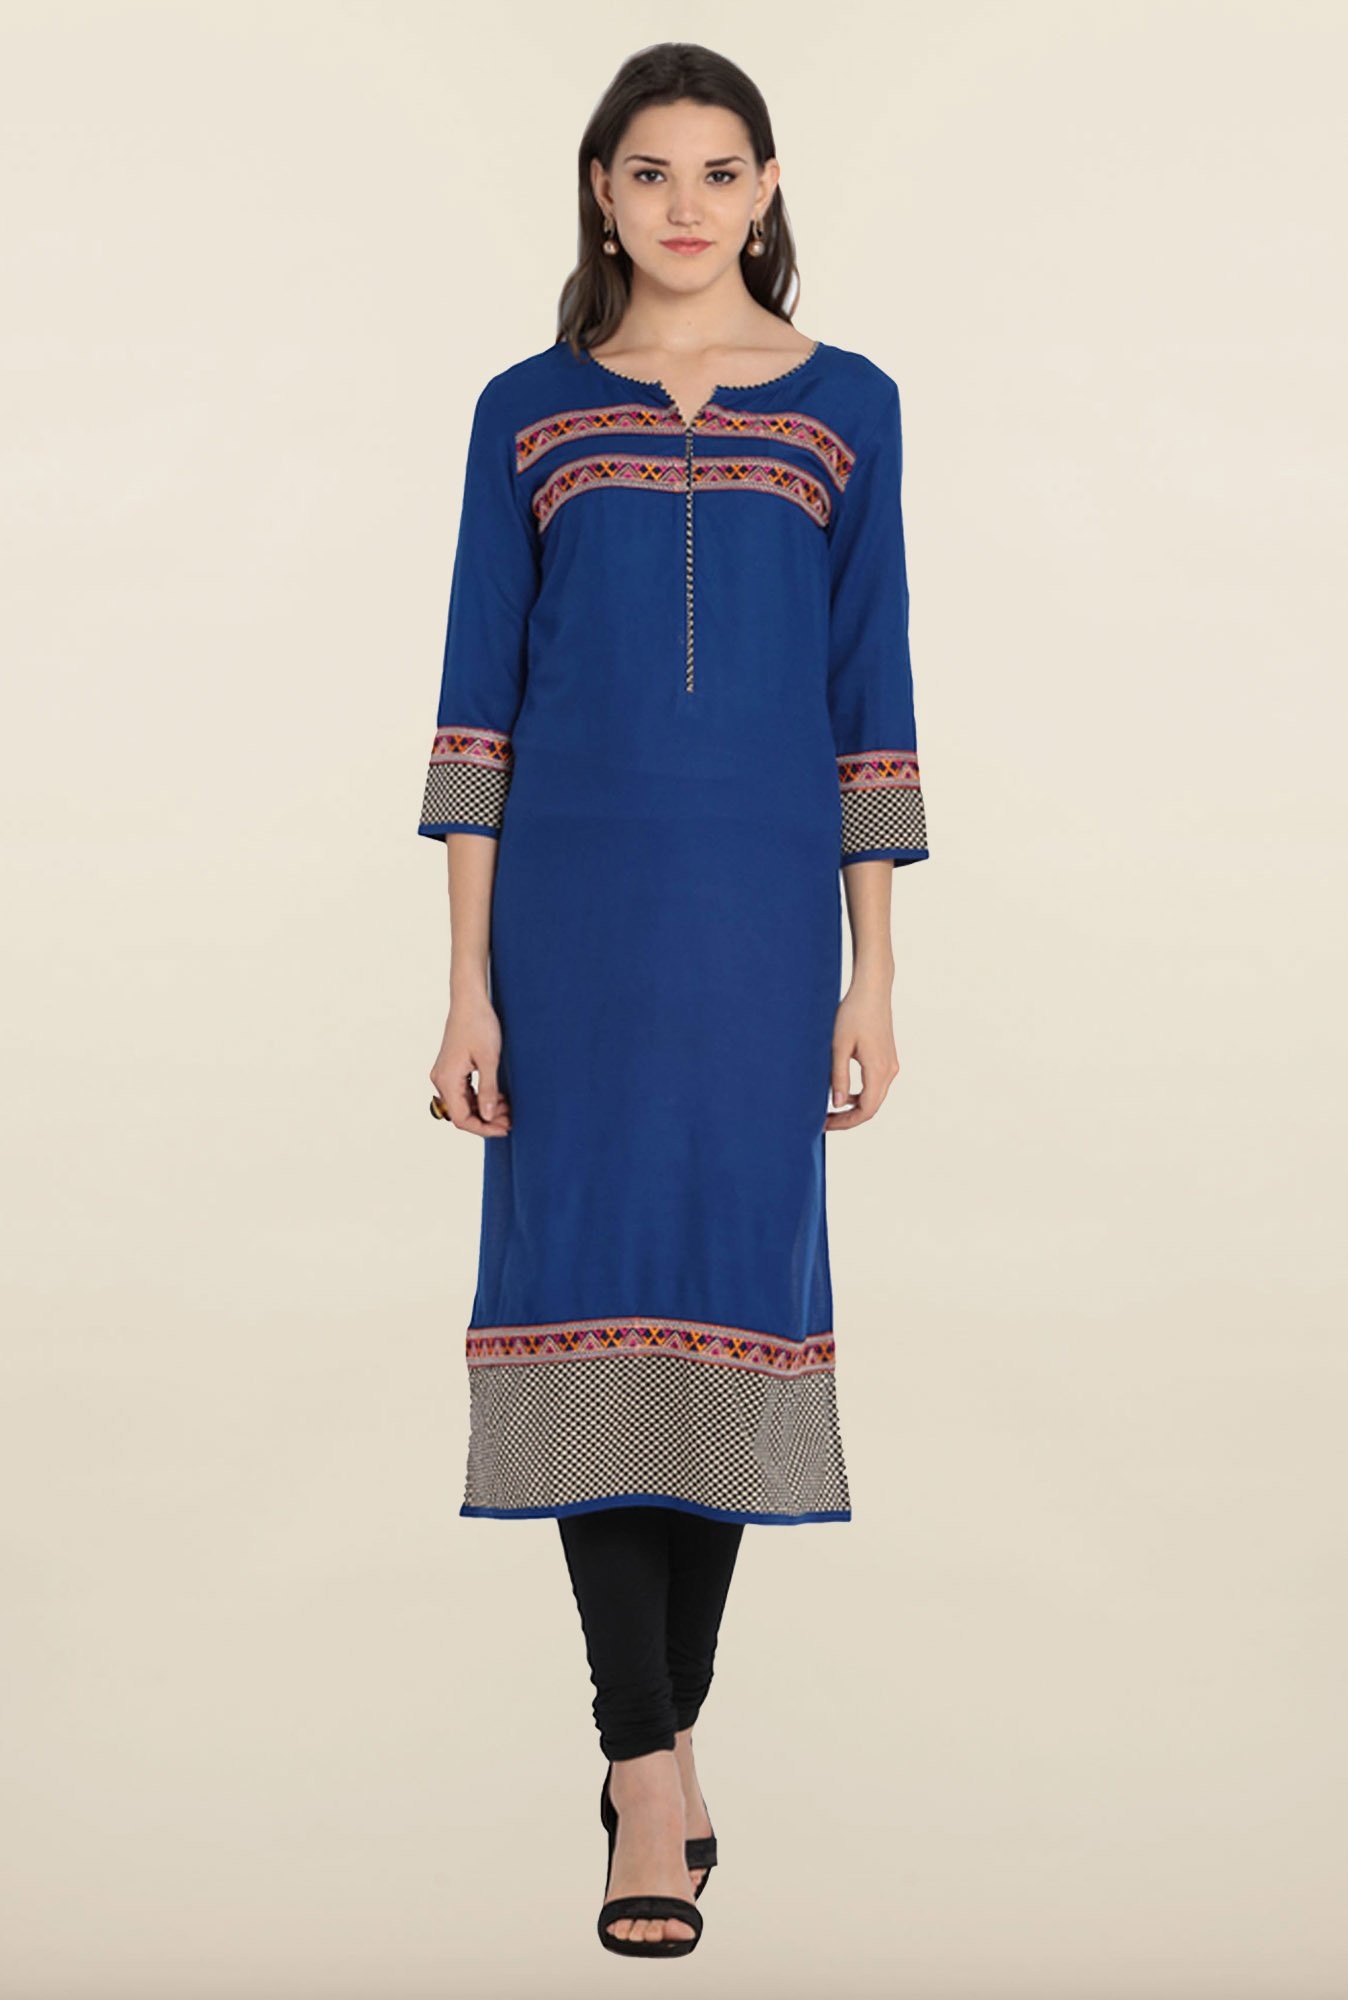 Soch Royal Blue & Beige Printed Kurta